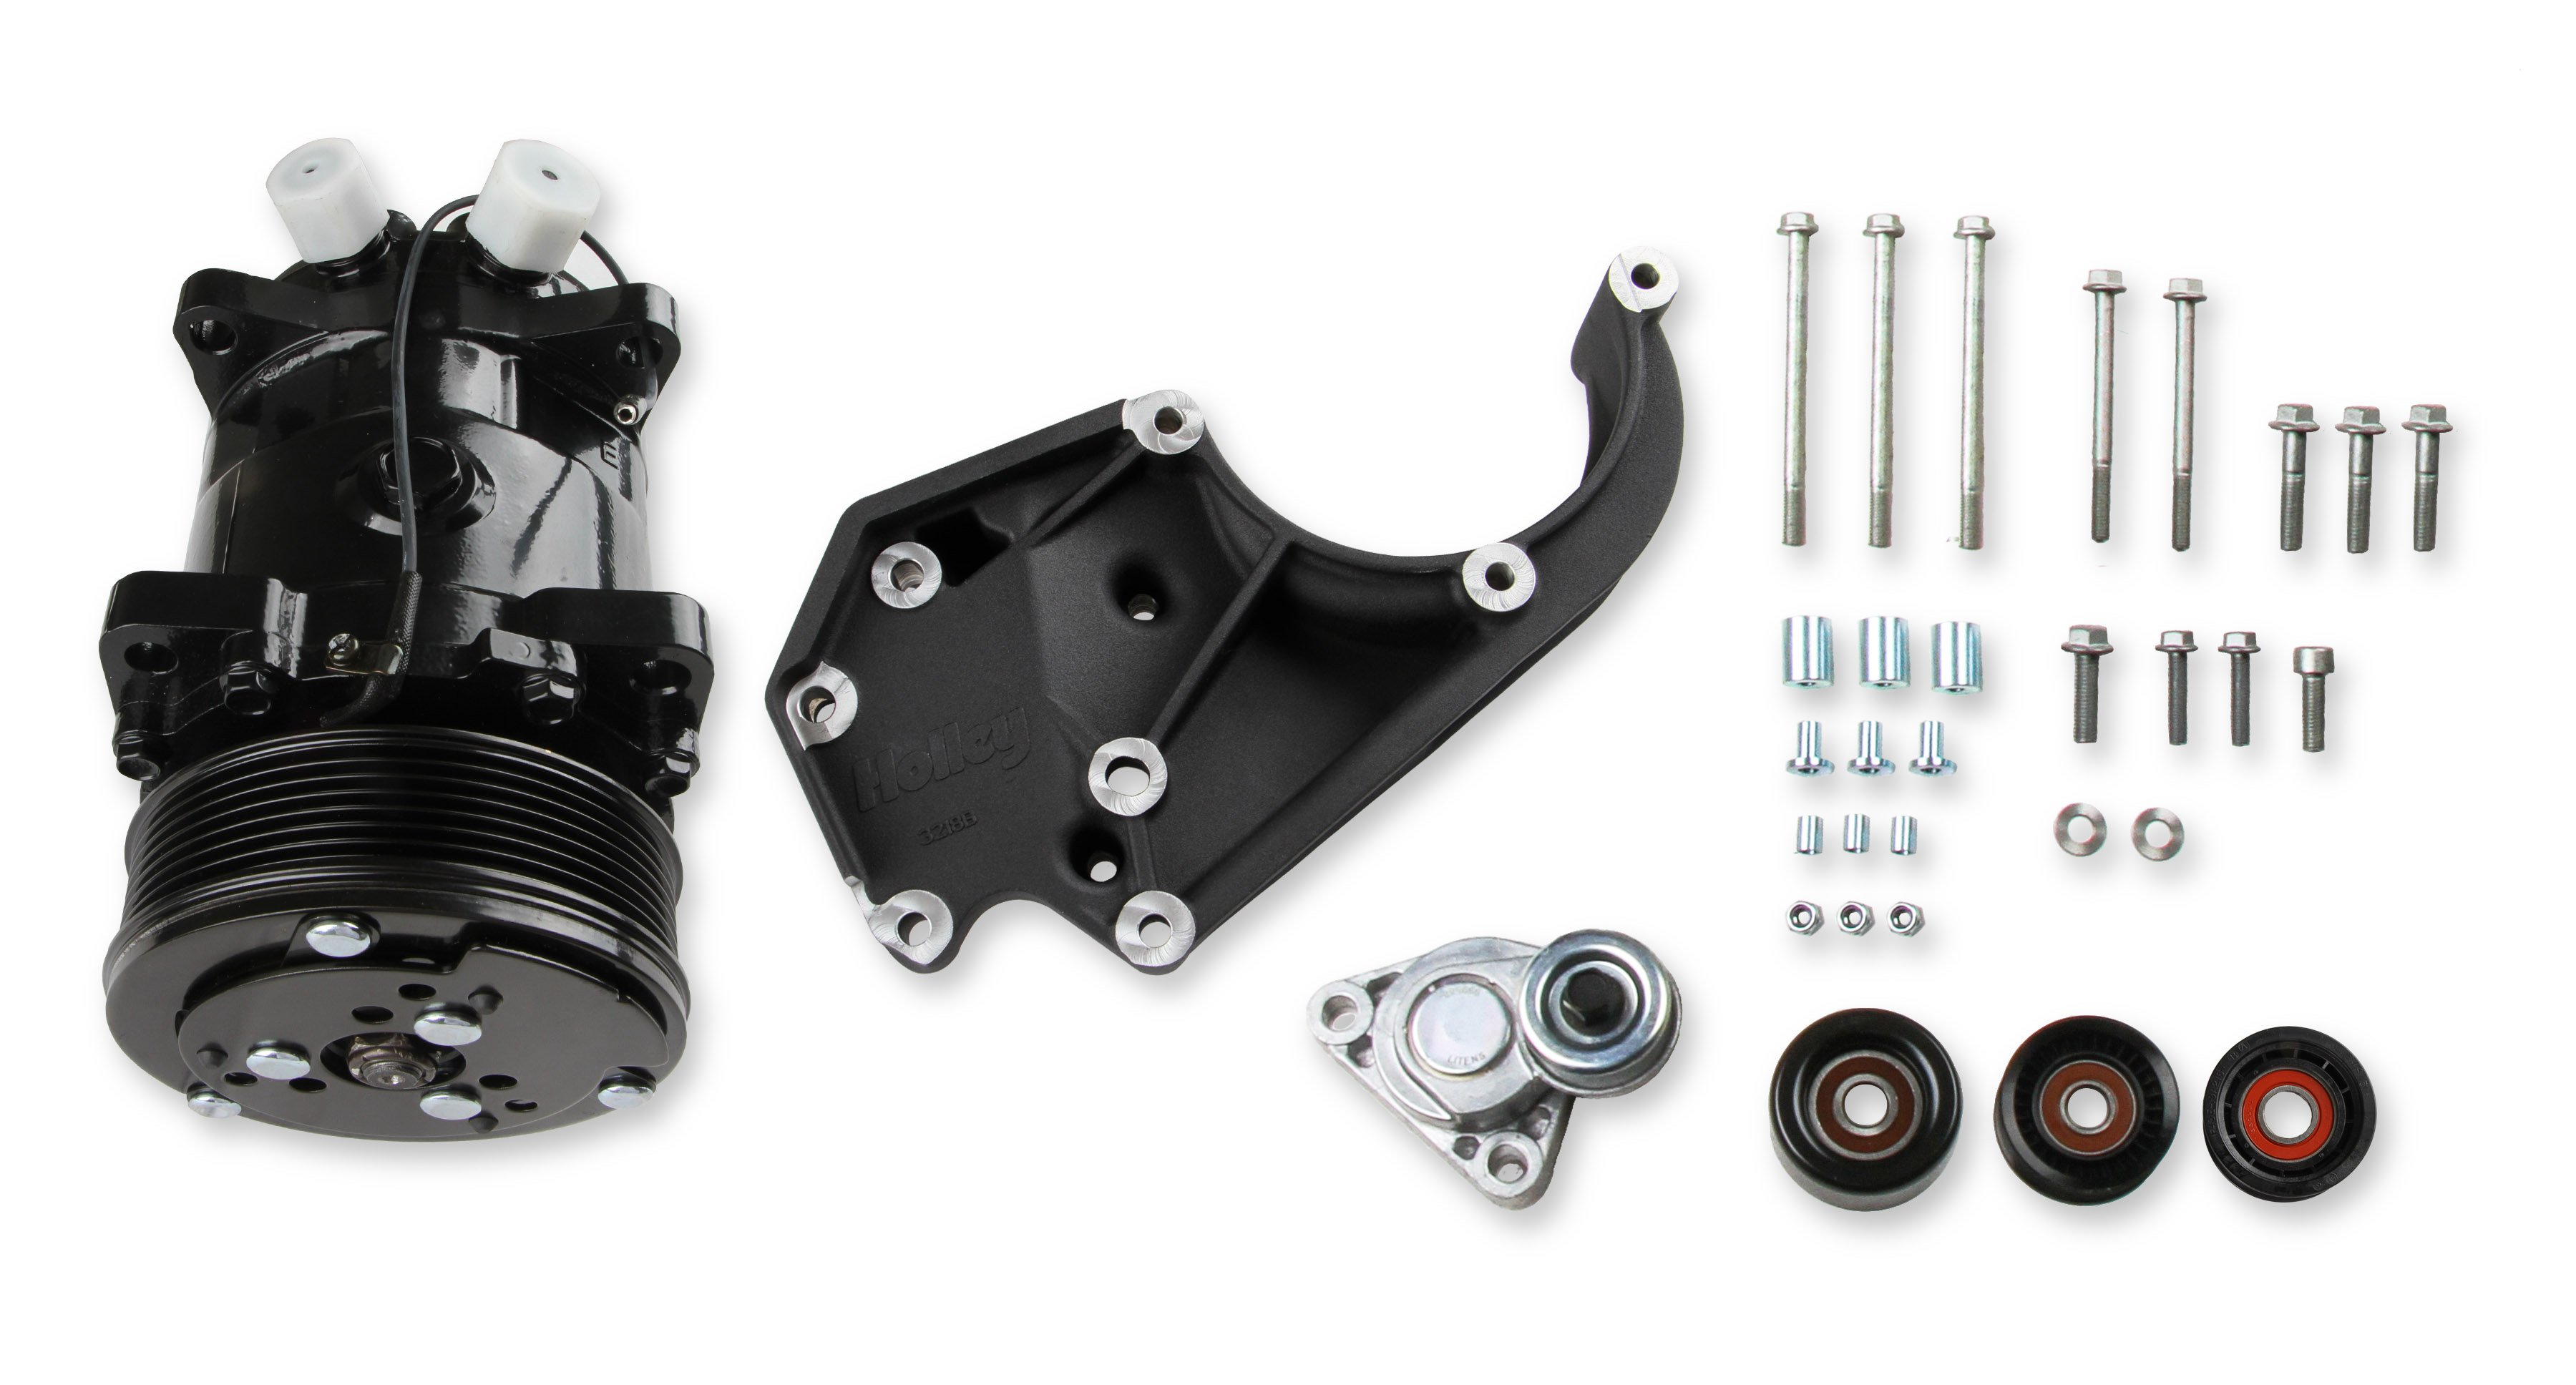 LS A/C Accessory Drive Kit - Includes SD508 A/C Compressor, Tensioner, &  Pulleys- Black Finish